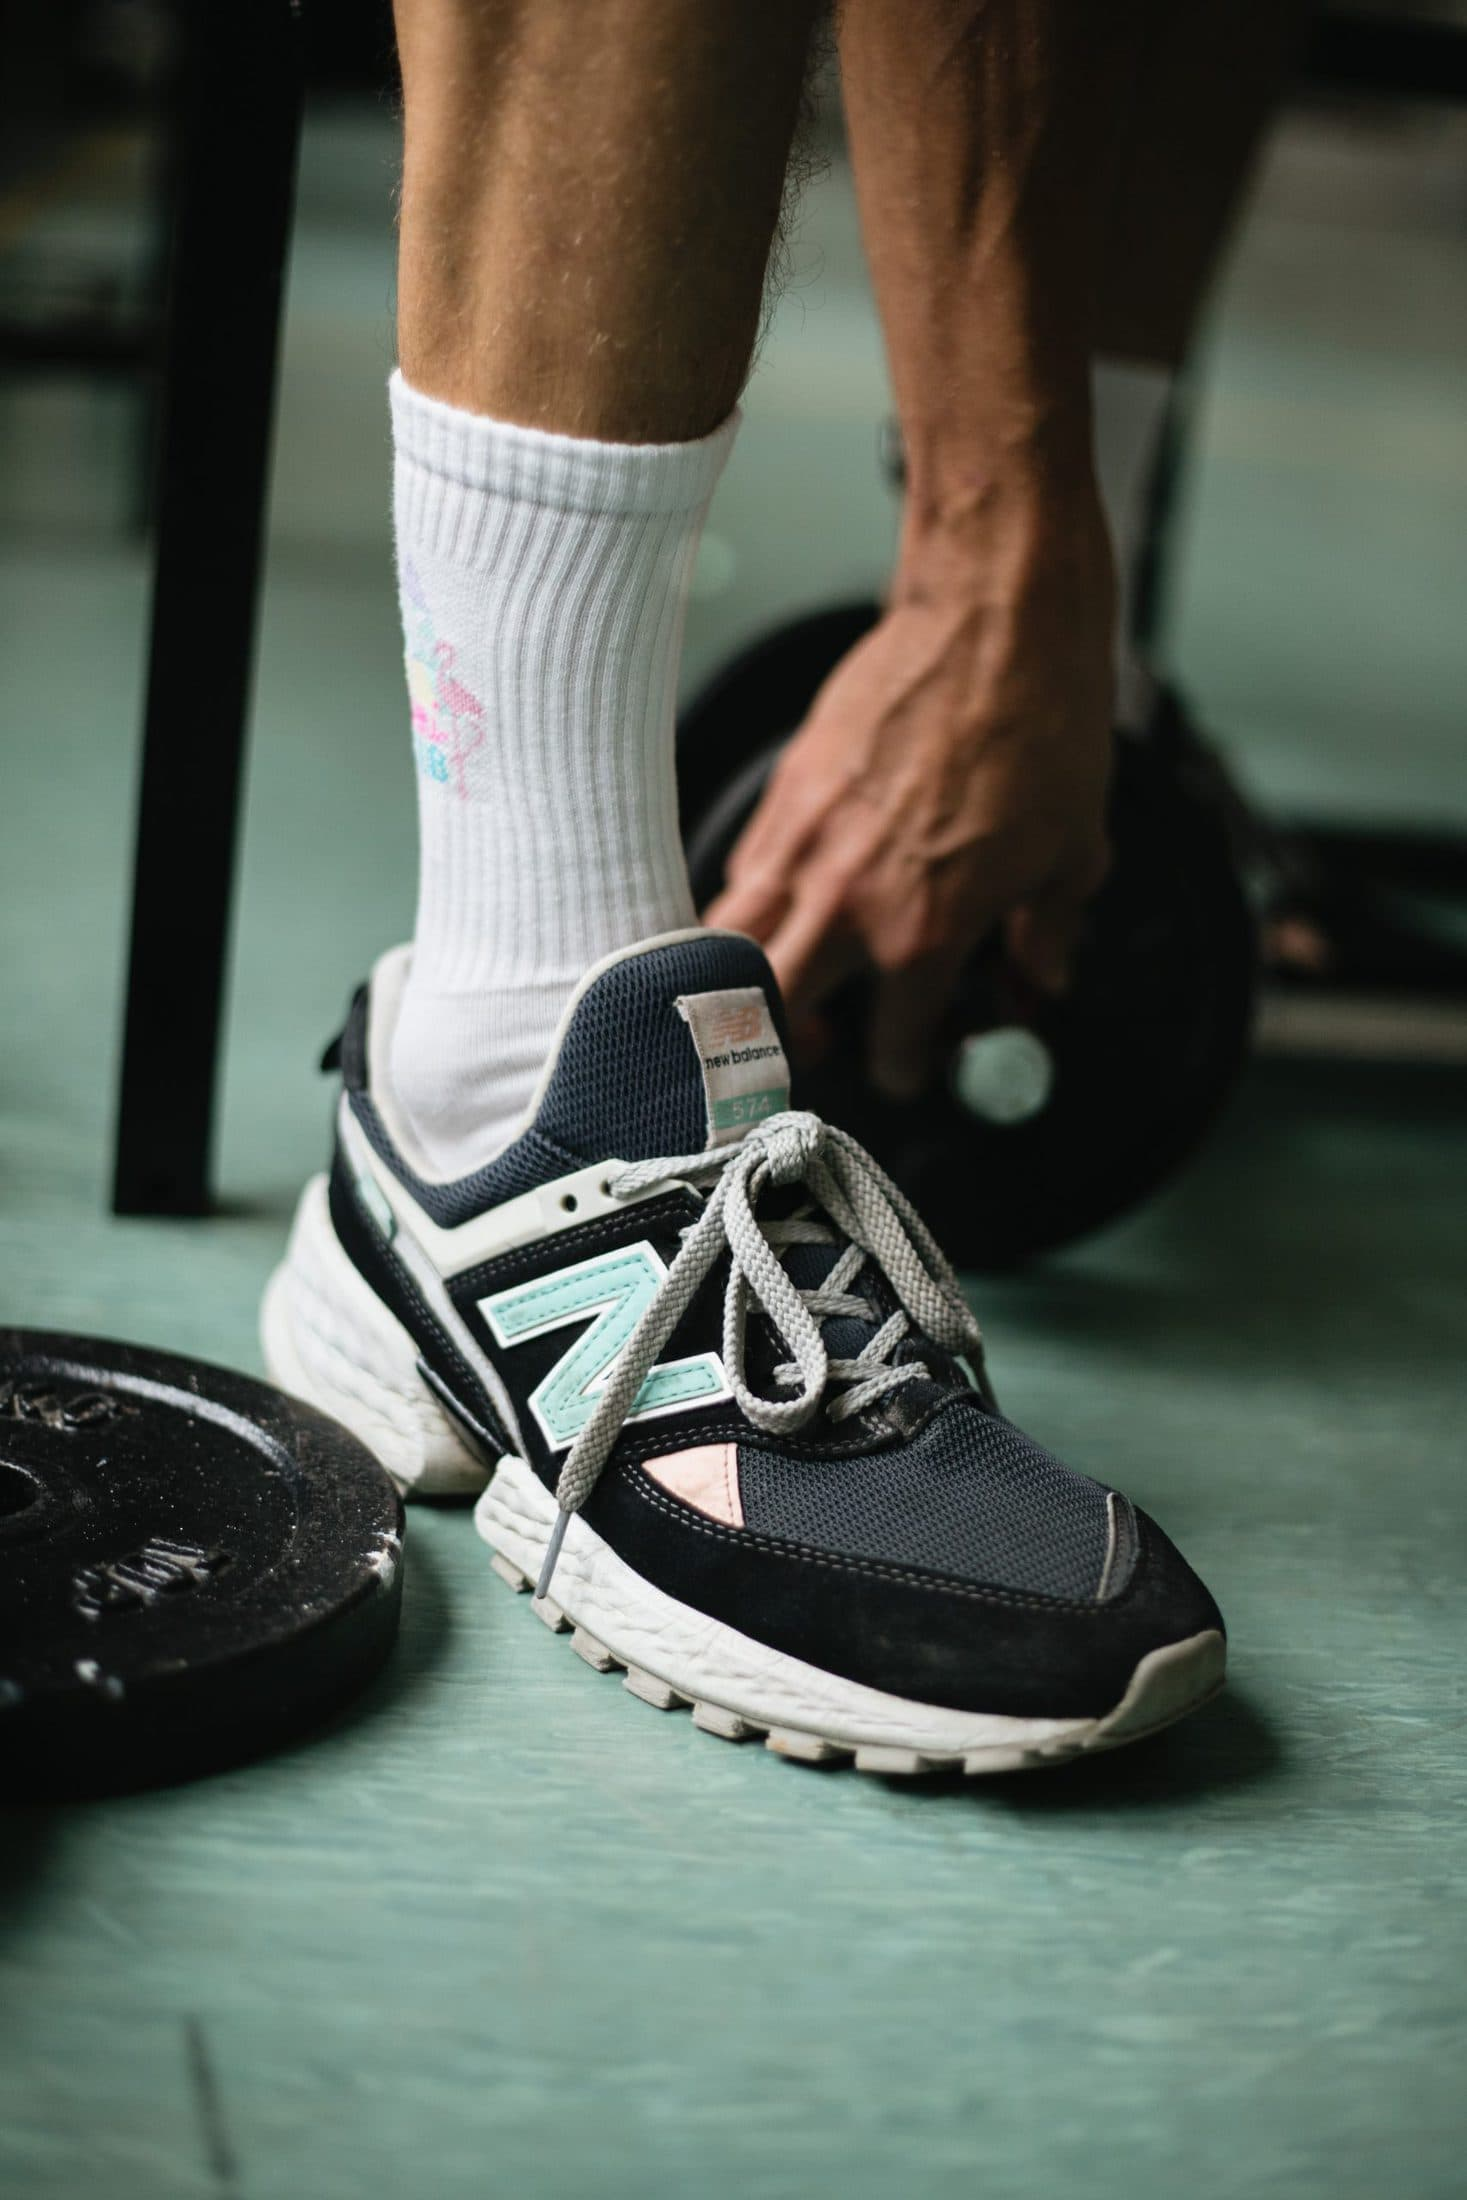 person wearing black and white new balance athletic shoes